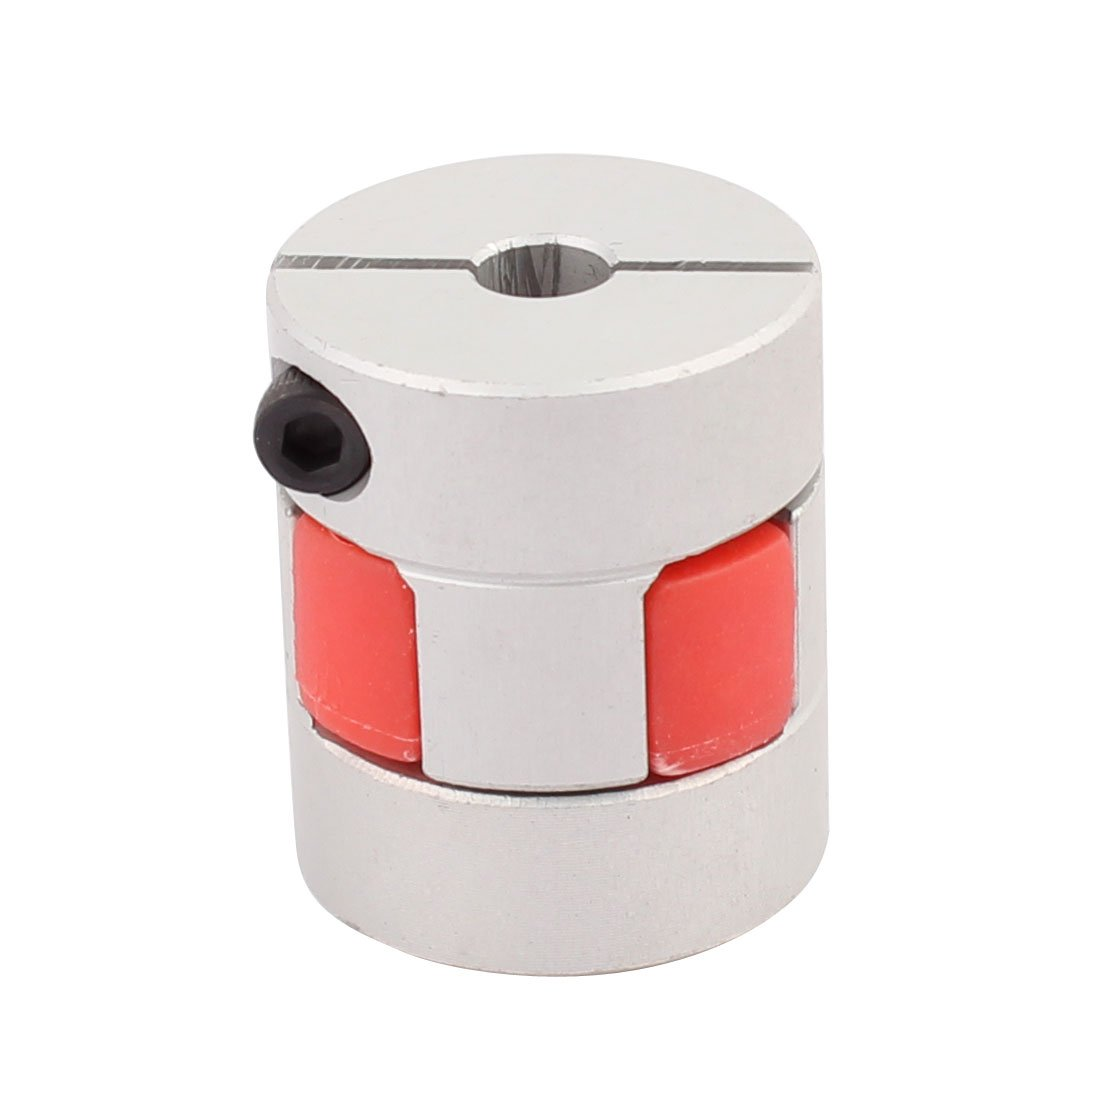 uxcell 8mm to 10mm Shaft Coupling 30mm Length 25mm Diameter Motor Coupler Aluminum Alloy Joint Connector for DIY Encoder